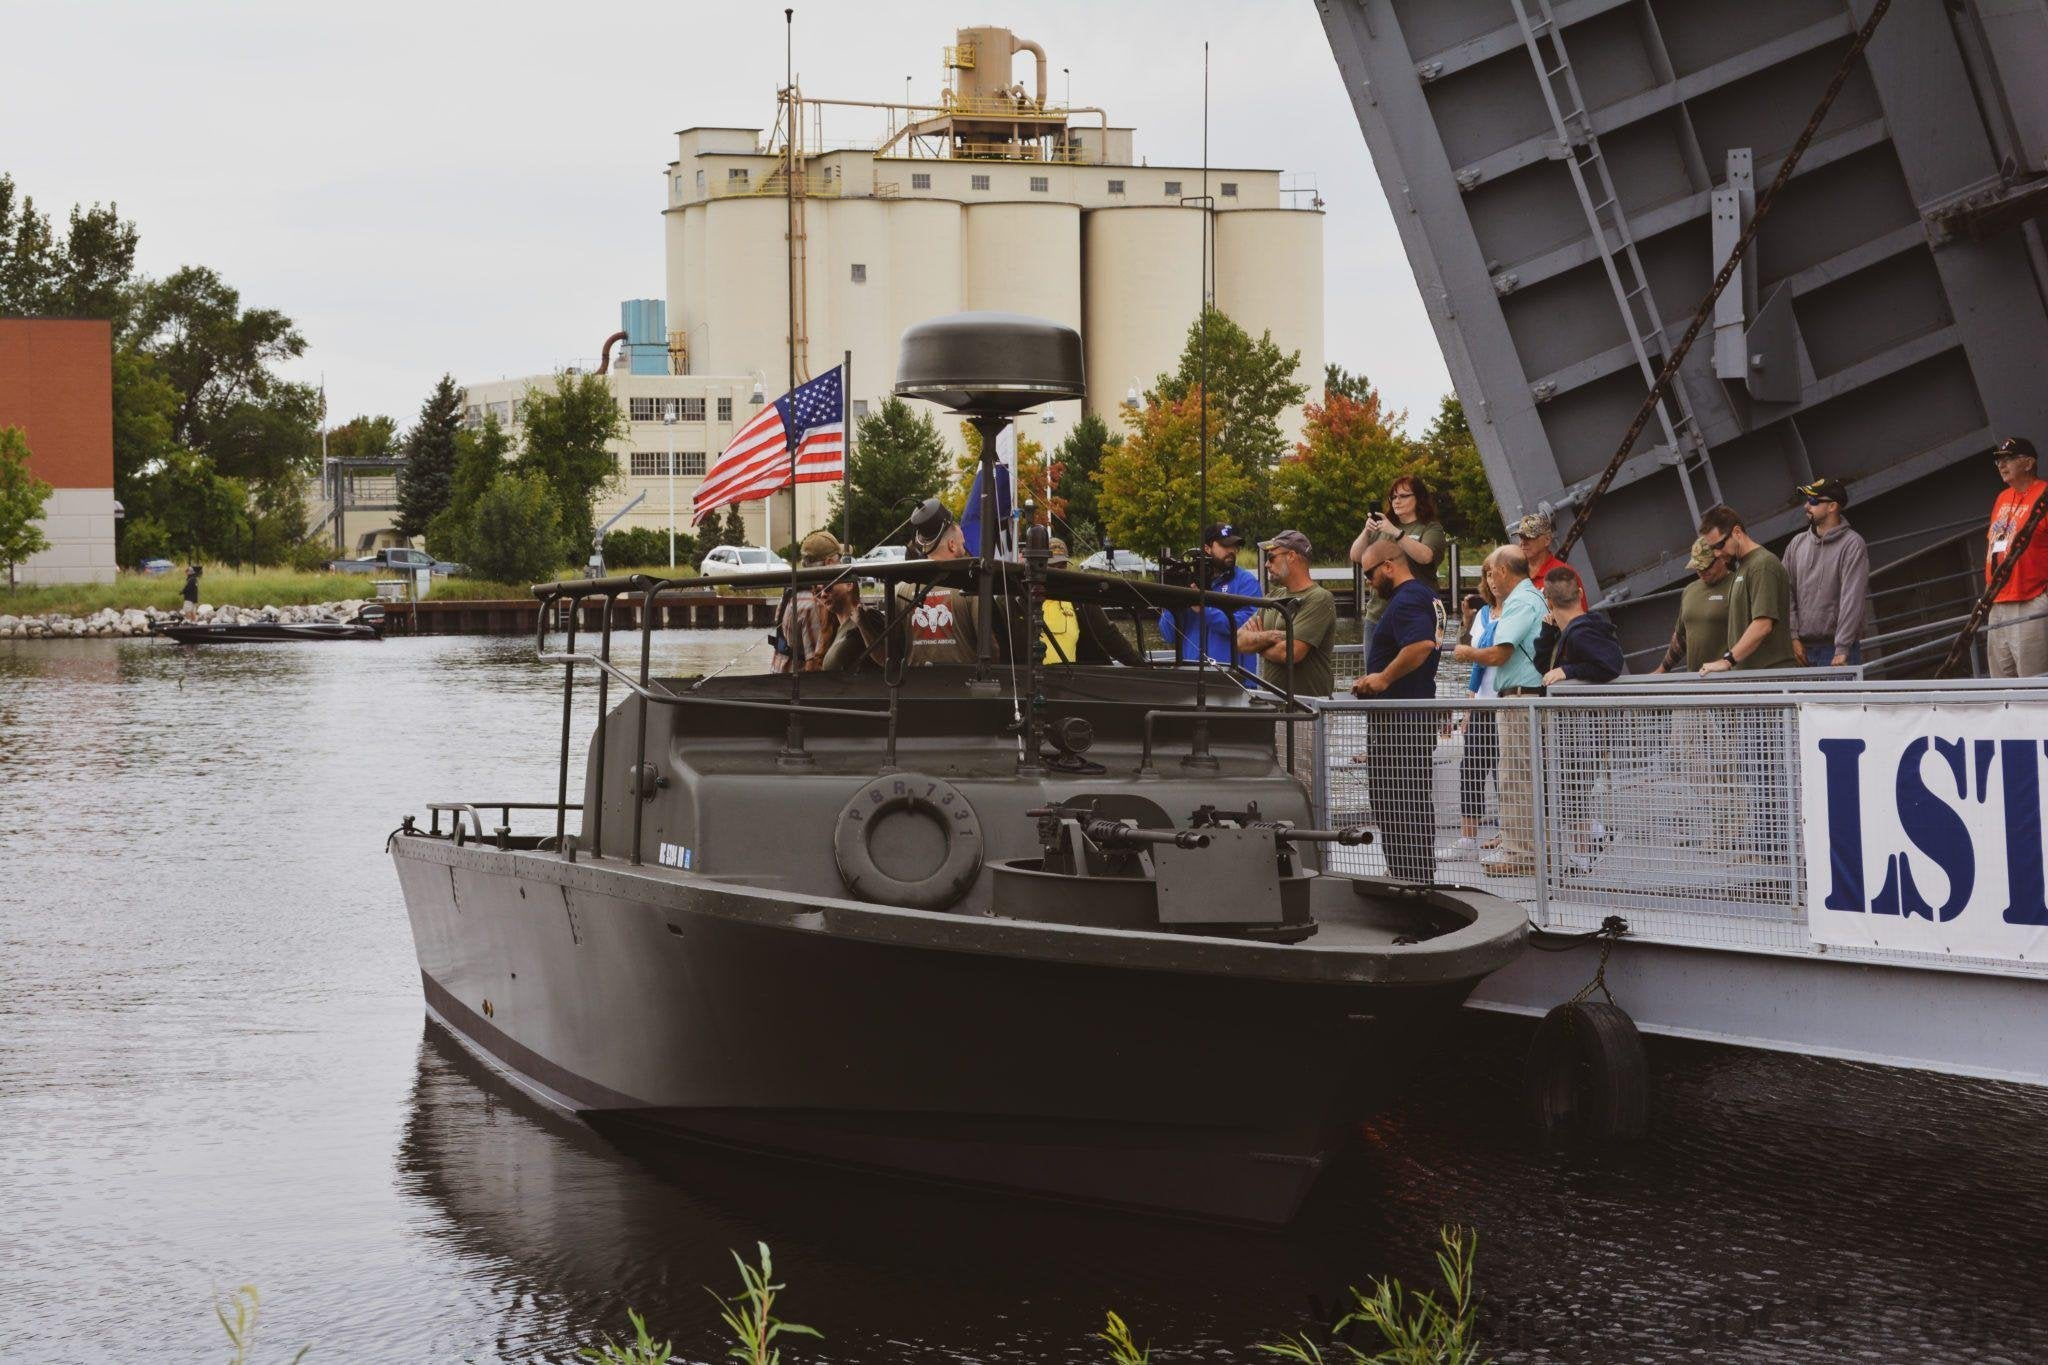 Vietnam-Era River Patrol Boat Roars Back to Life on Lake Michigan-Warrior Lodge Media